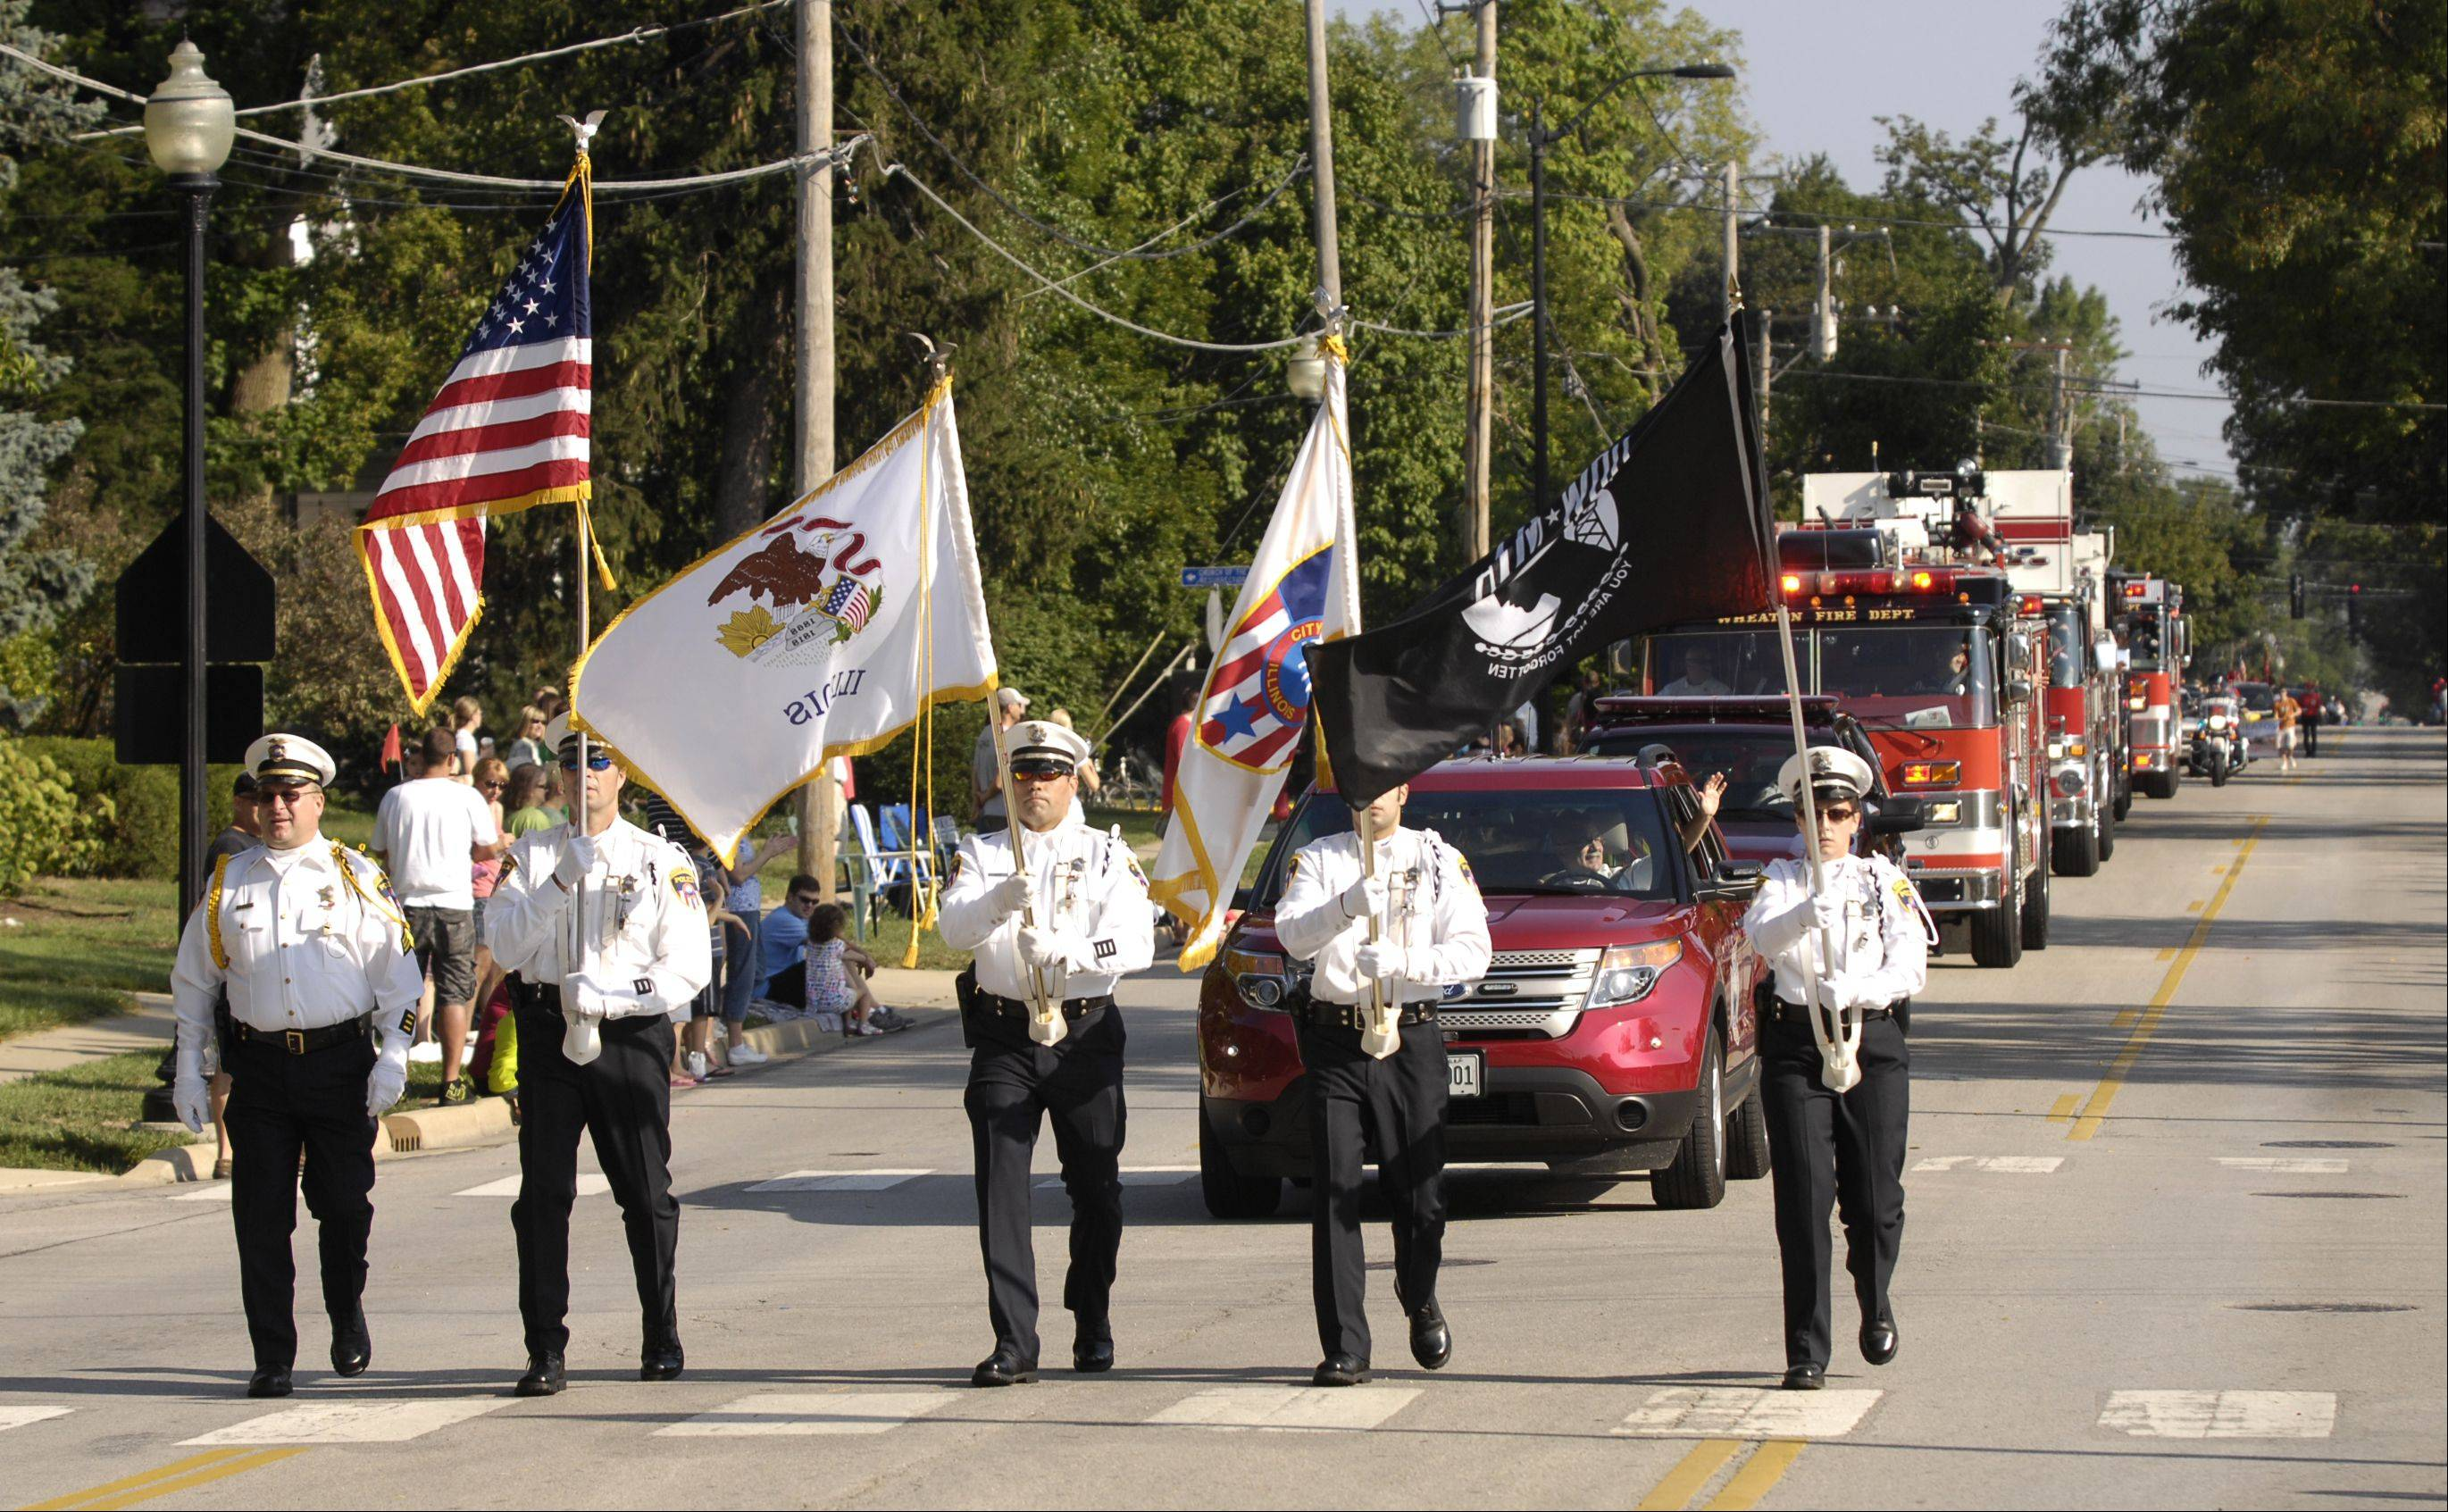 The Wheaton Police Honor Guard lead the Wheaton Labor Day Parade Monday. Wheaton held a Labor Day Parade to make up for the Fourth of July parade that was canceled because of storm damage.